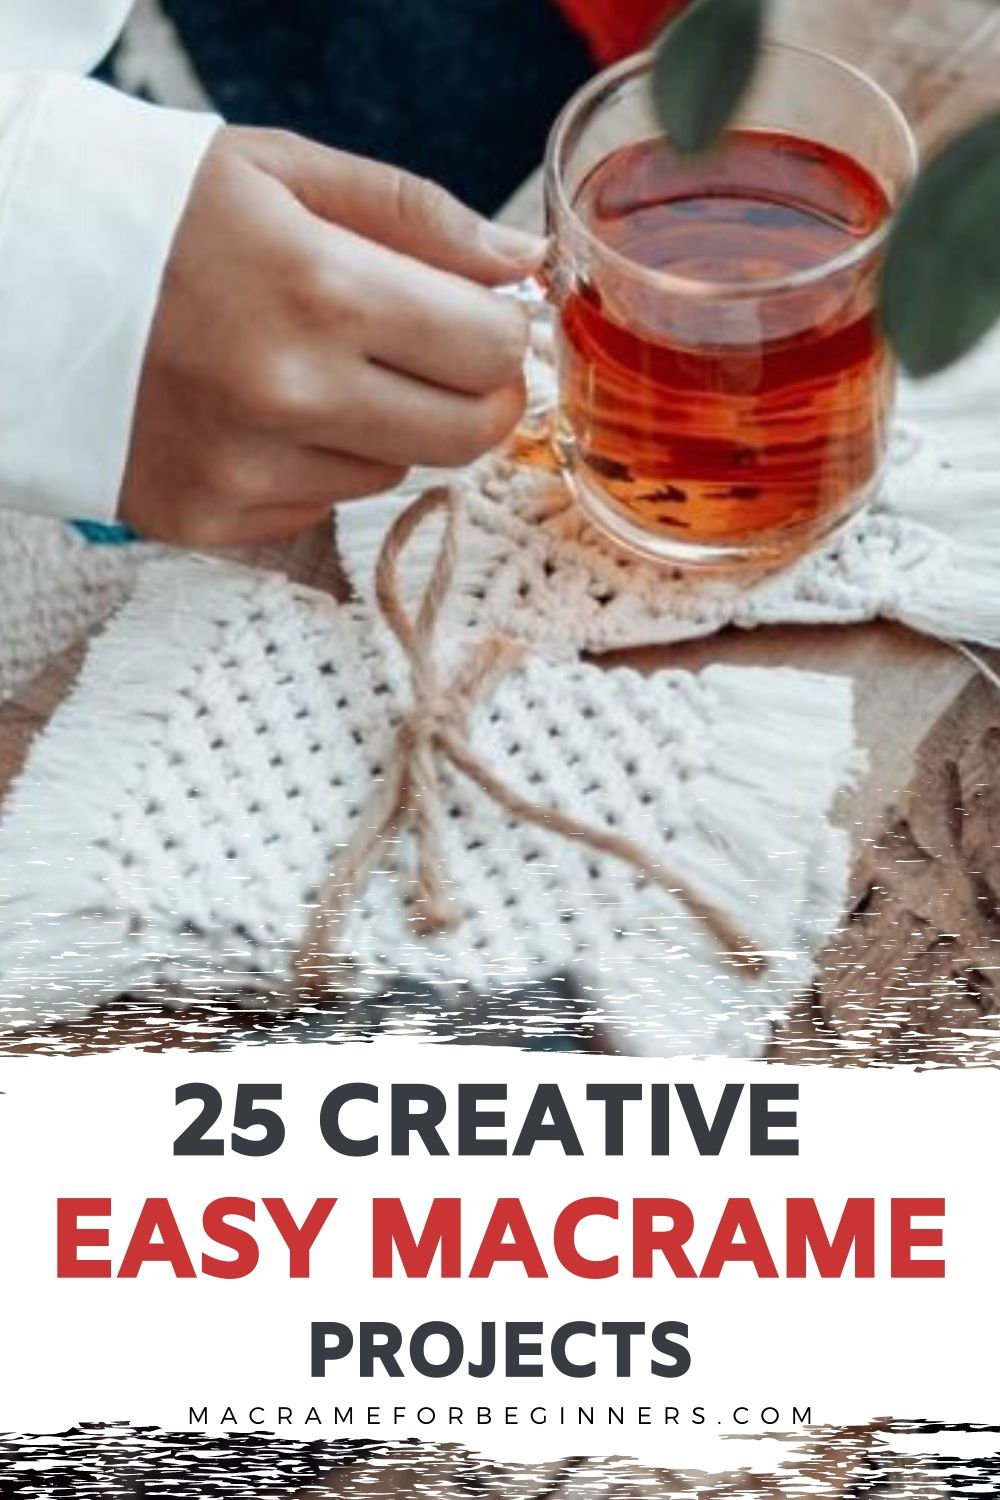 25 Original Ideas for Your Next Macrame Project - Macrame for Beginners